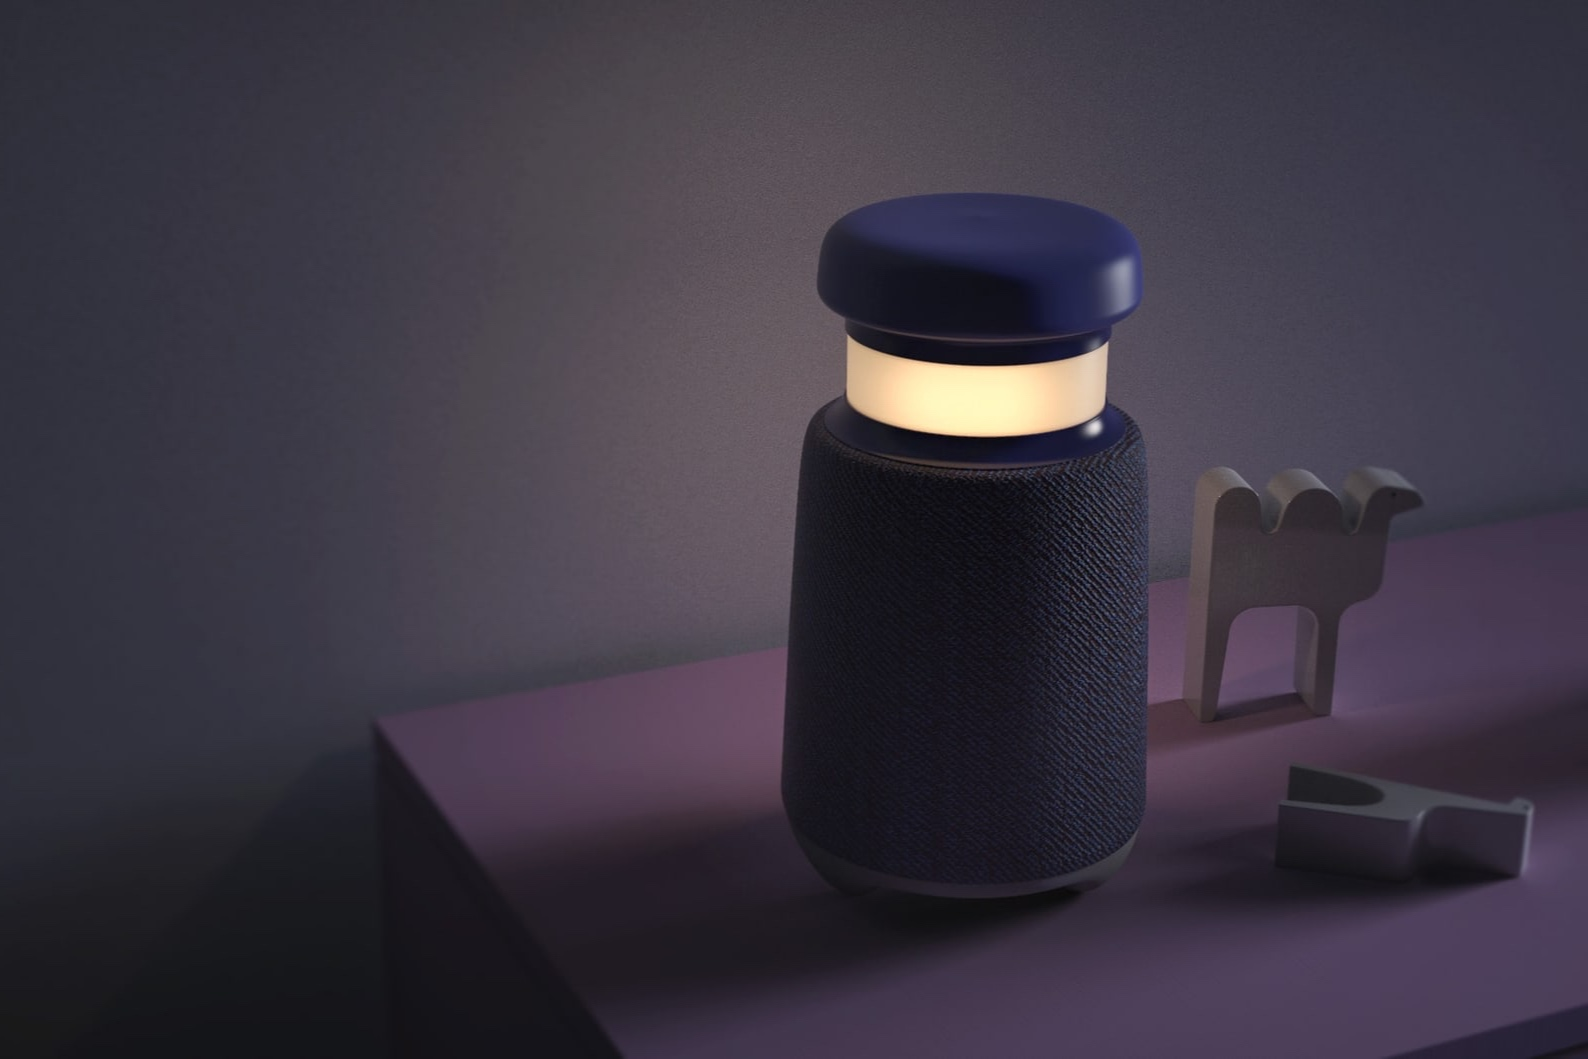 Roger  acts as a nightlight and a radio. The two functions work in unison to create an age appropriate bedtime ritual.